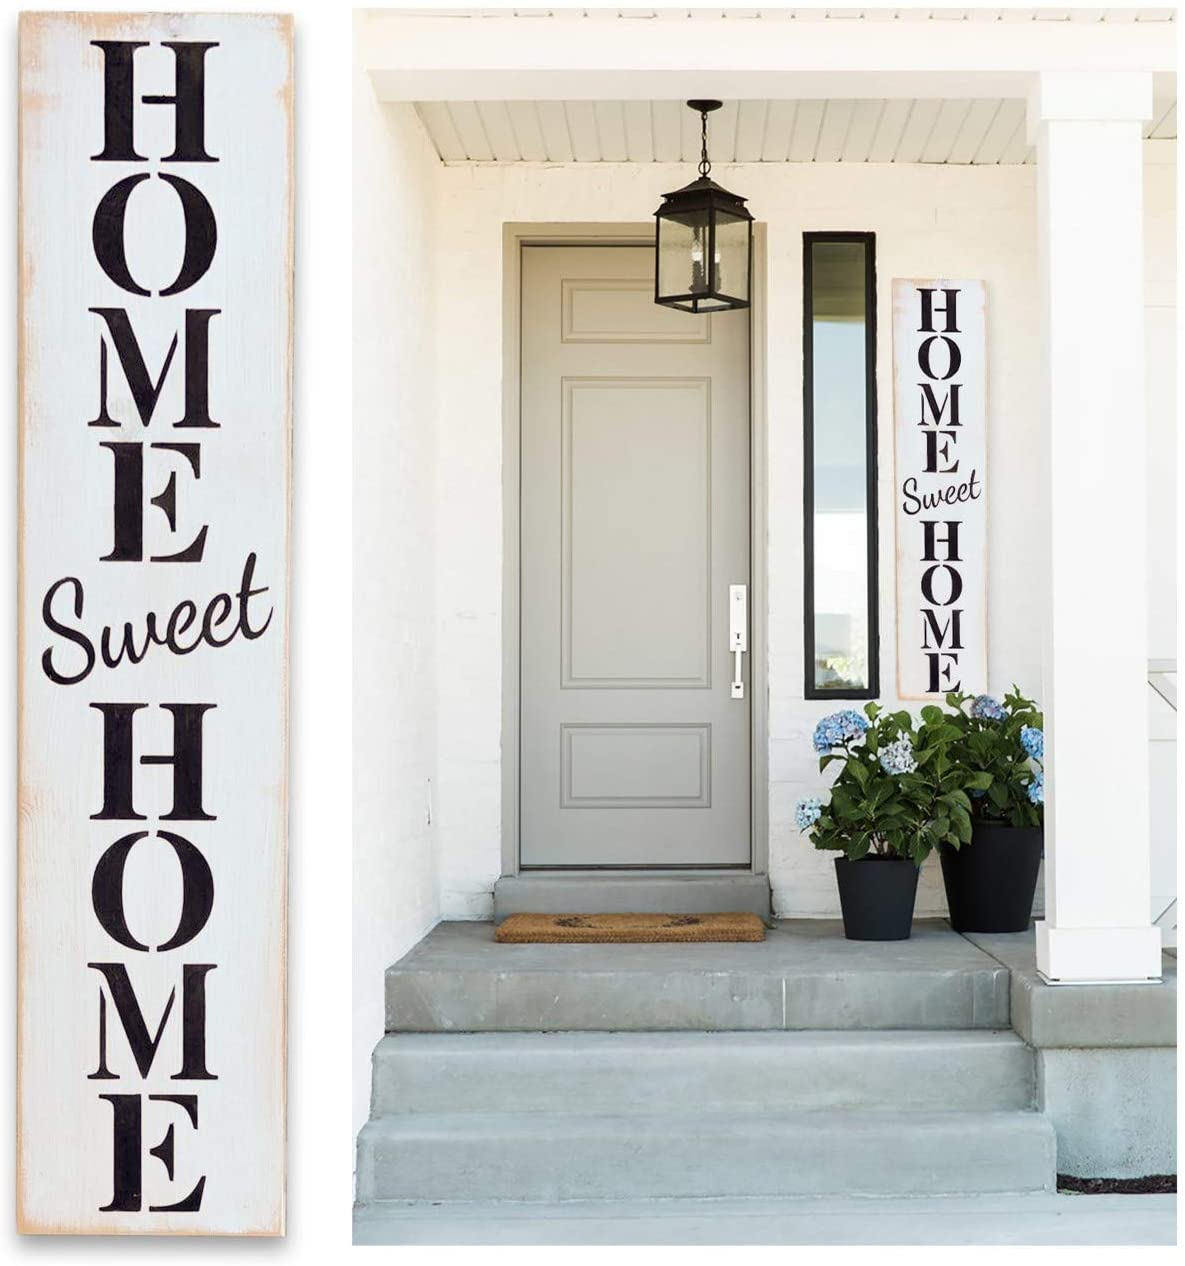 Porch Welcome Sign Tall - Outdoor Welcome Signs for Porch - Home Sweet Home - 42